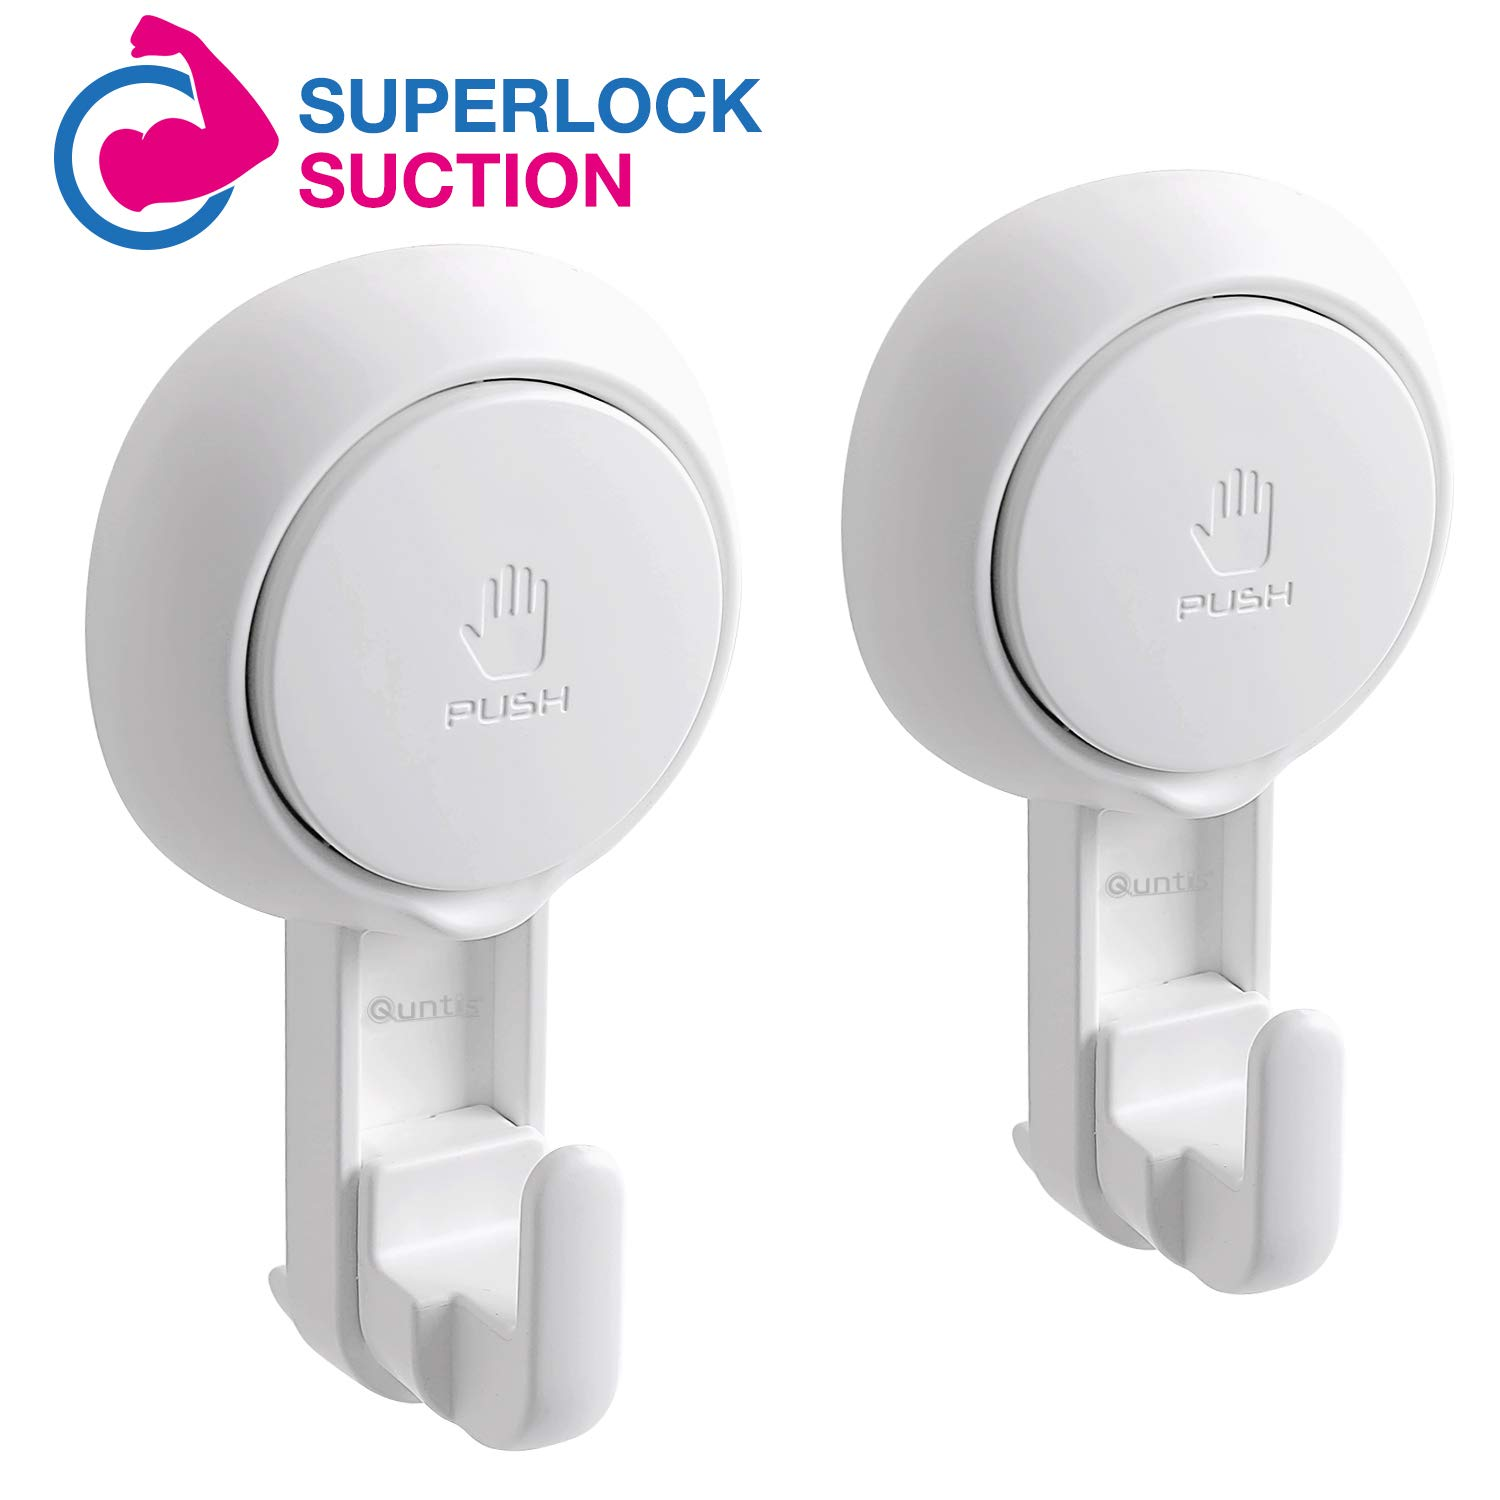 Quntis Suction Cup Hooks for Shower, Reusable Shower Suction Cups with Hooks Heavy Duty Vacuum Suction Home Kitchen Bathroom Wall Hooks Hanger for Towel Bathrobe Loofa Washcloth, 2 Pack